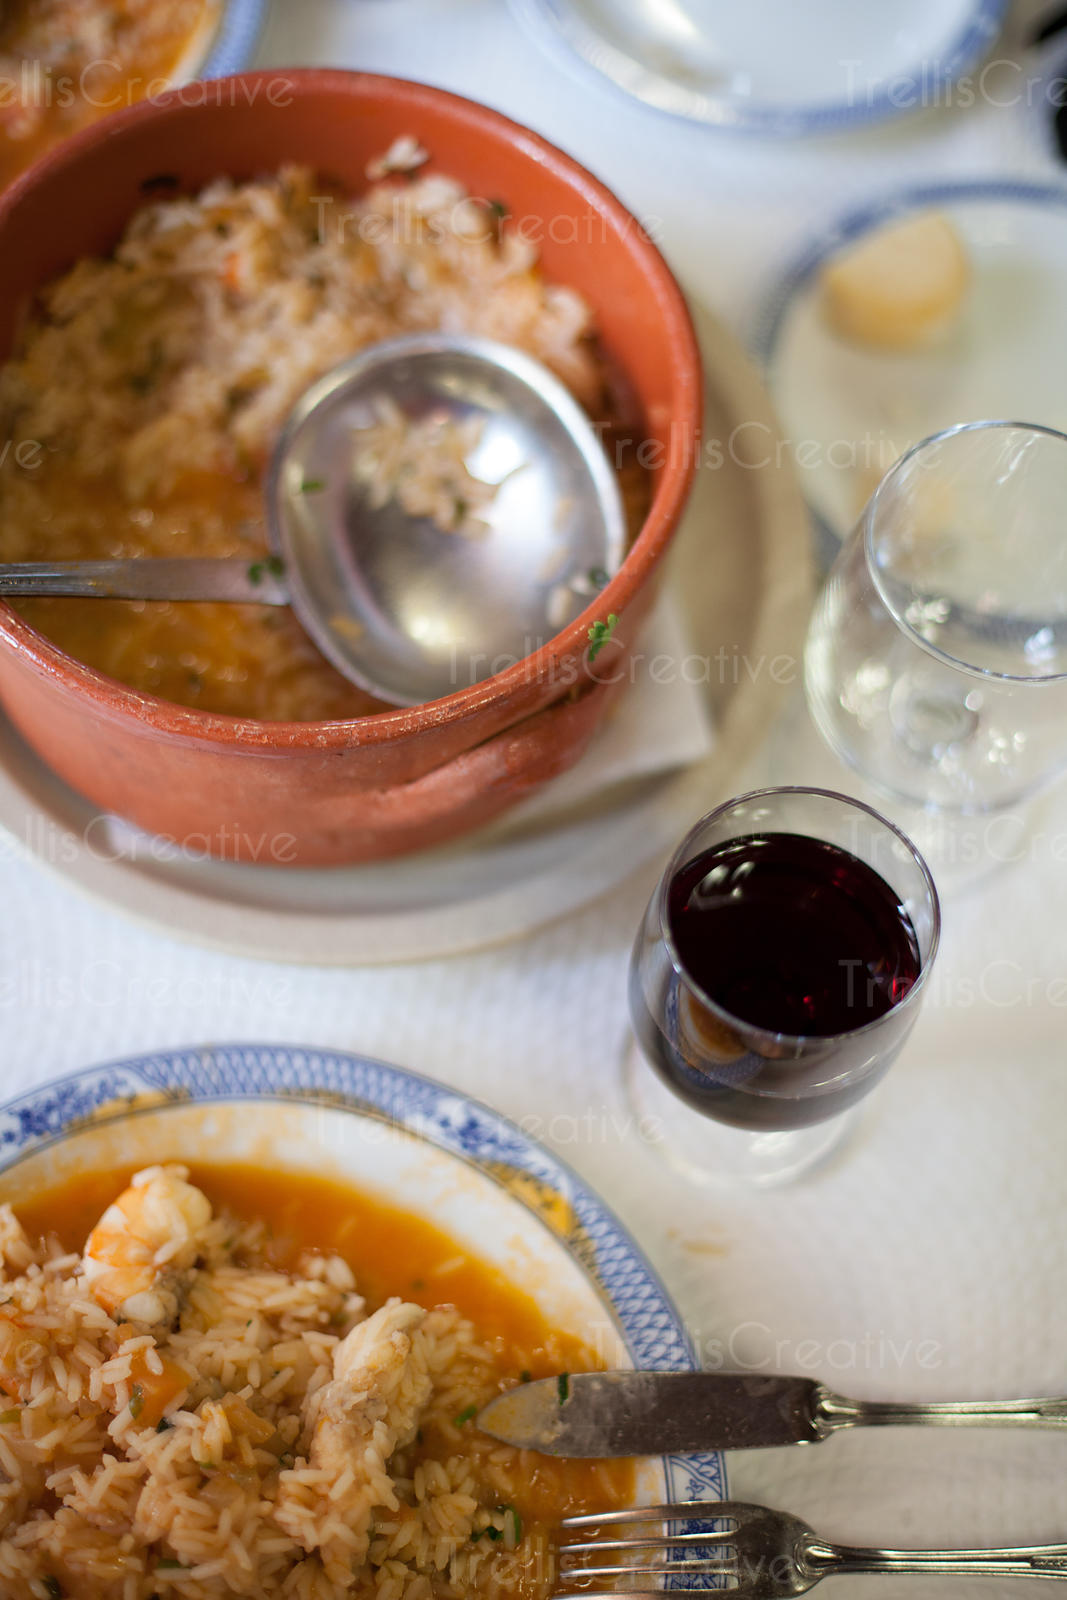 The monk fish stew was one of our memorable meals at Restaurante Regional de Sintra